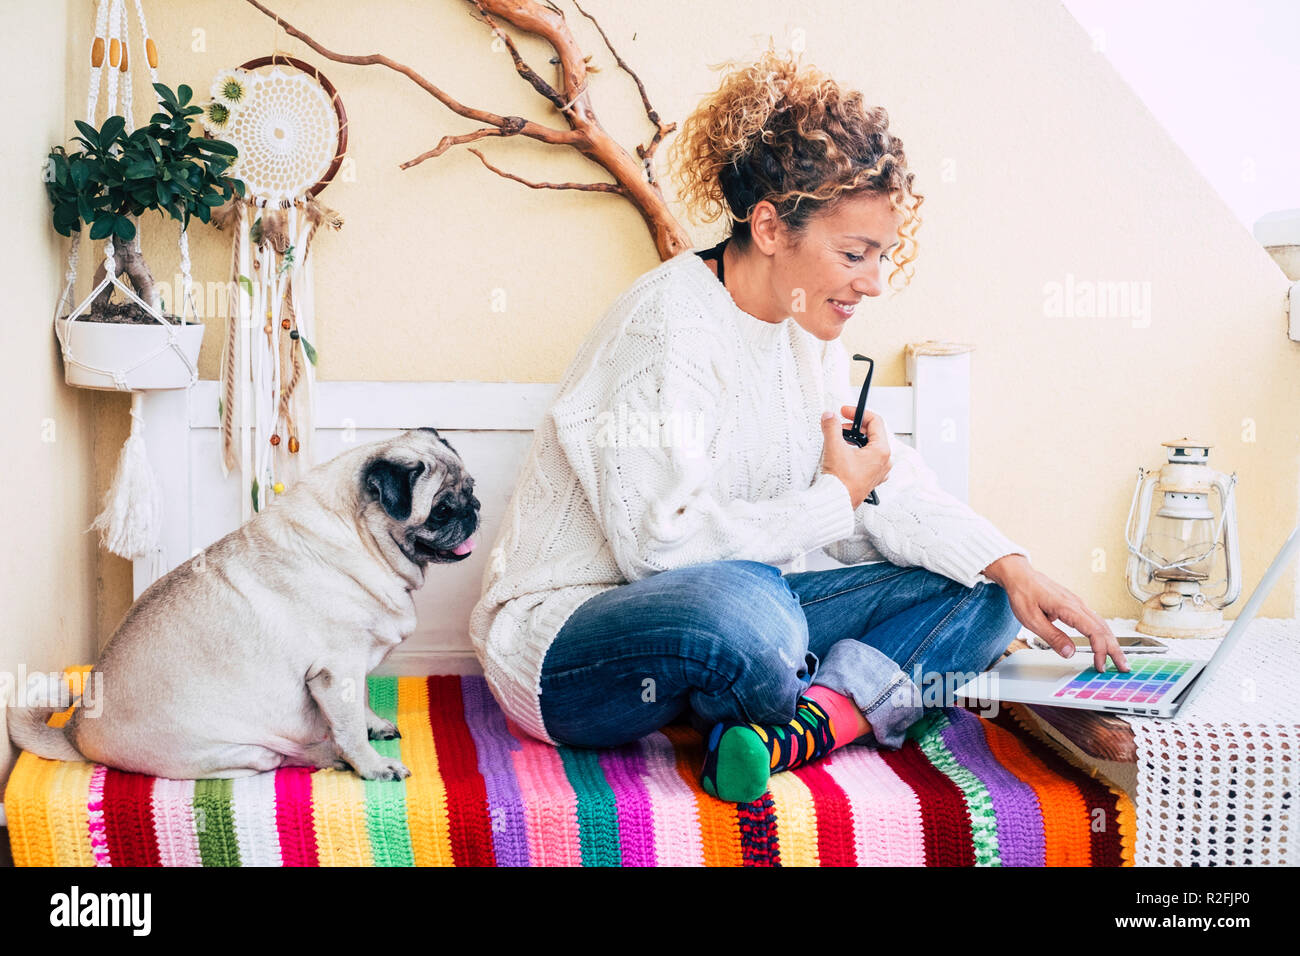 beutiful caucasian woman and funny old pug dog sitting on a bench in the terrace at home working or doing online shopping with a laptop together. friendship and alternative office location concept for free people Stock Photo